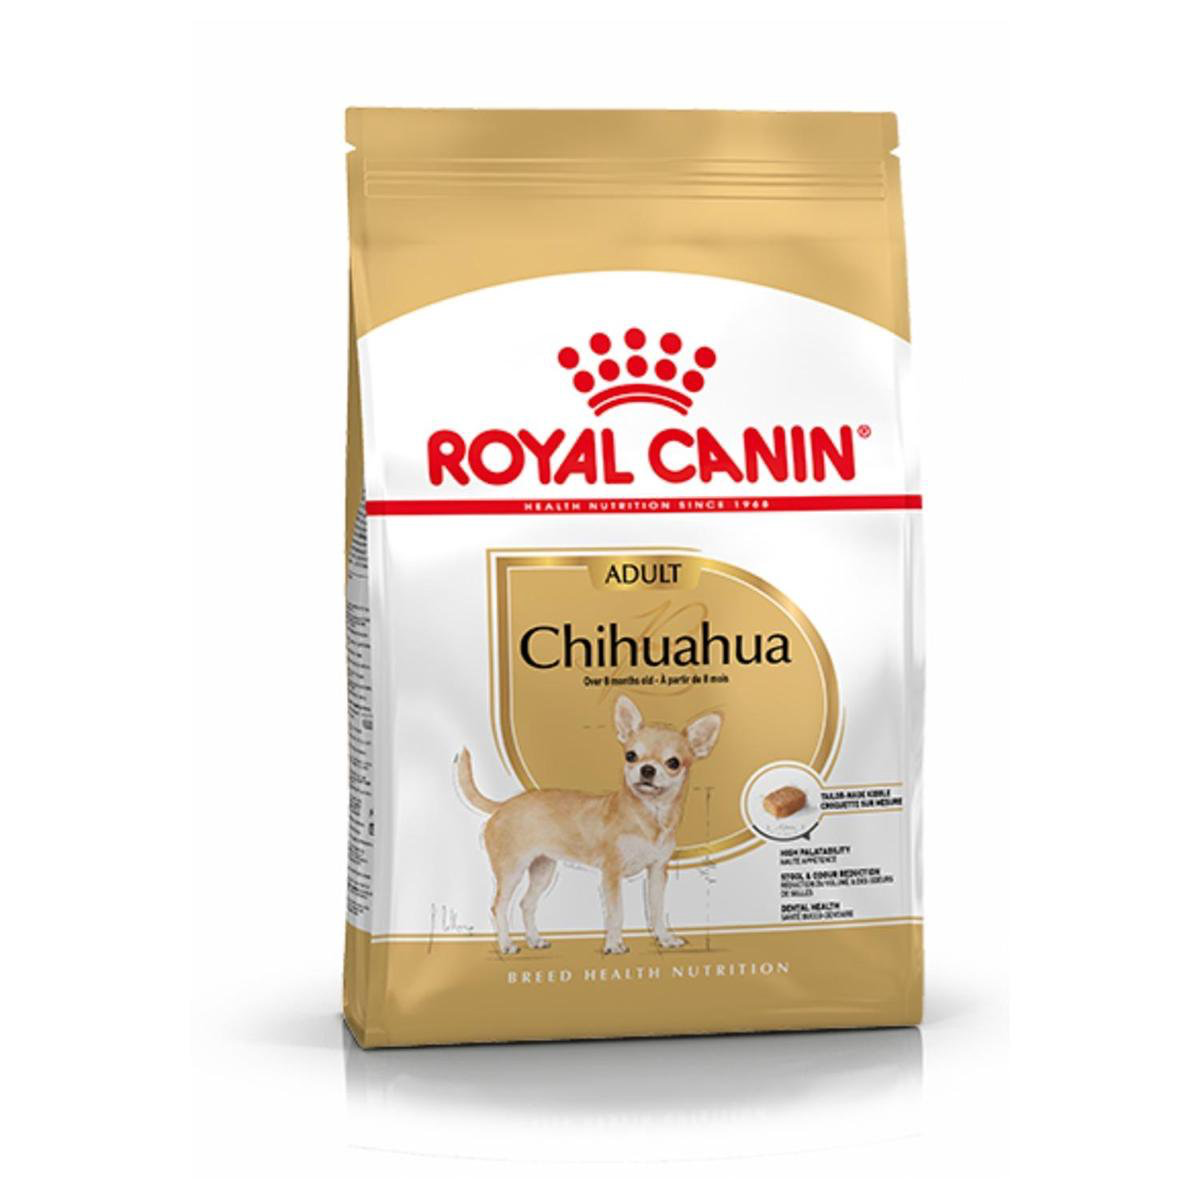 Royal Canin Royal Canin- Chihuahua adult 1,5kg